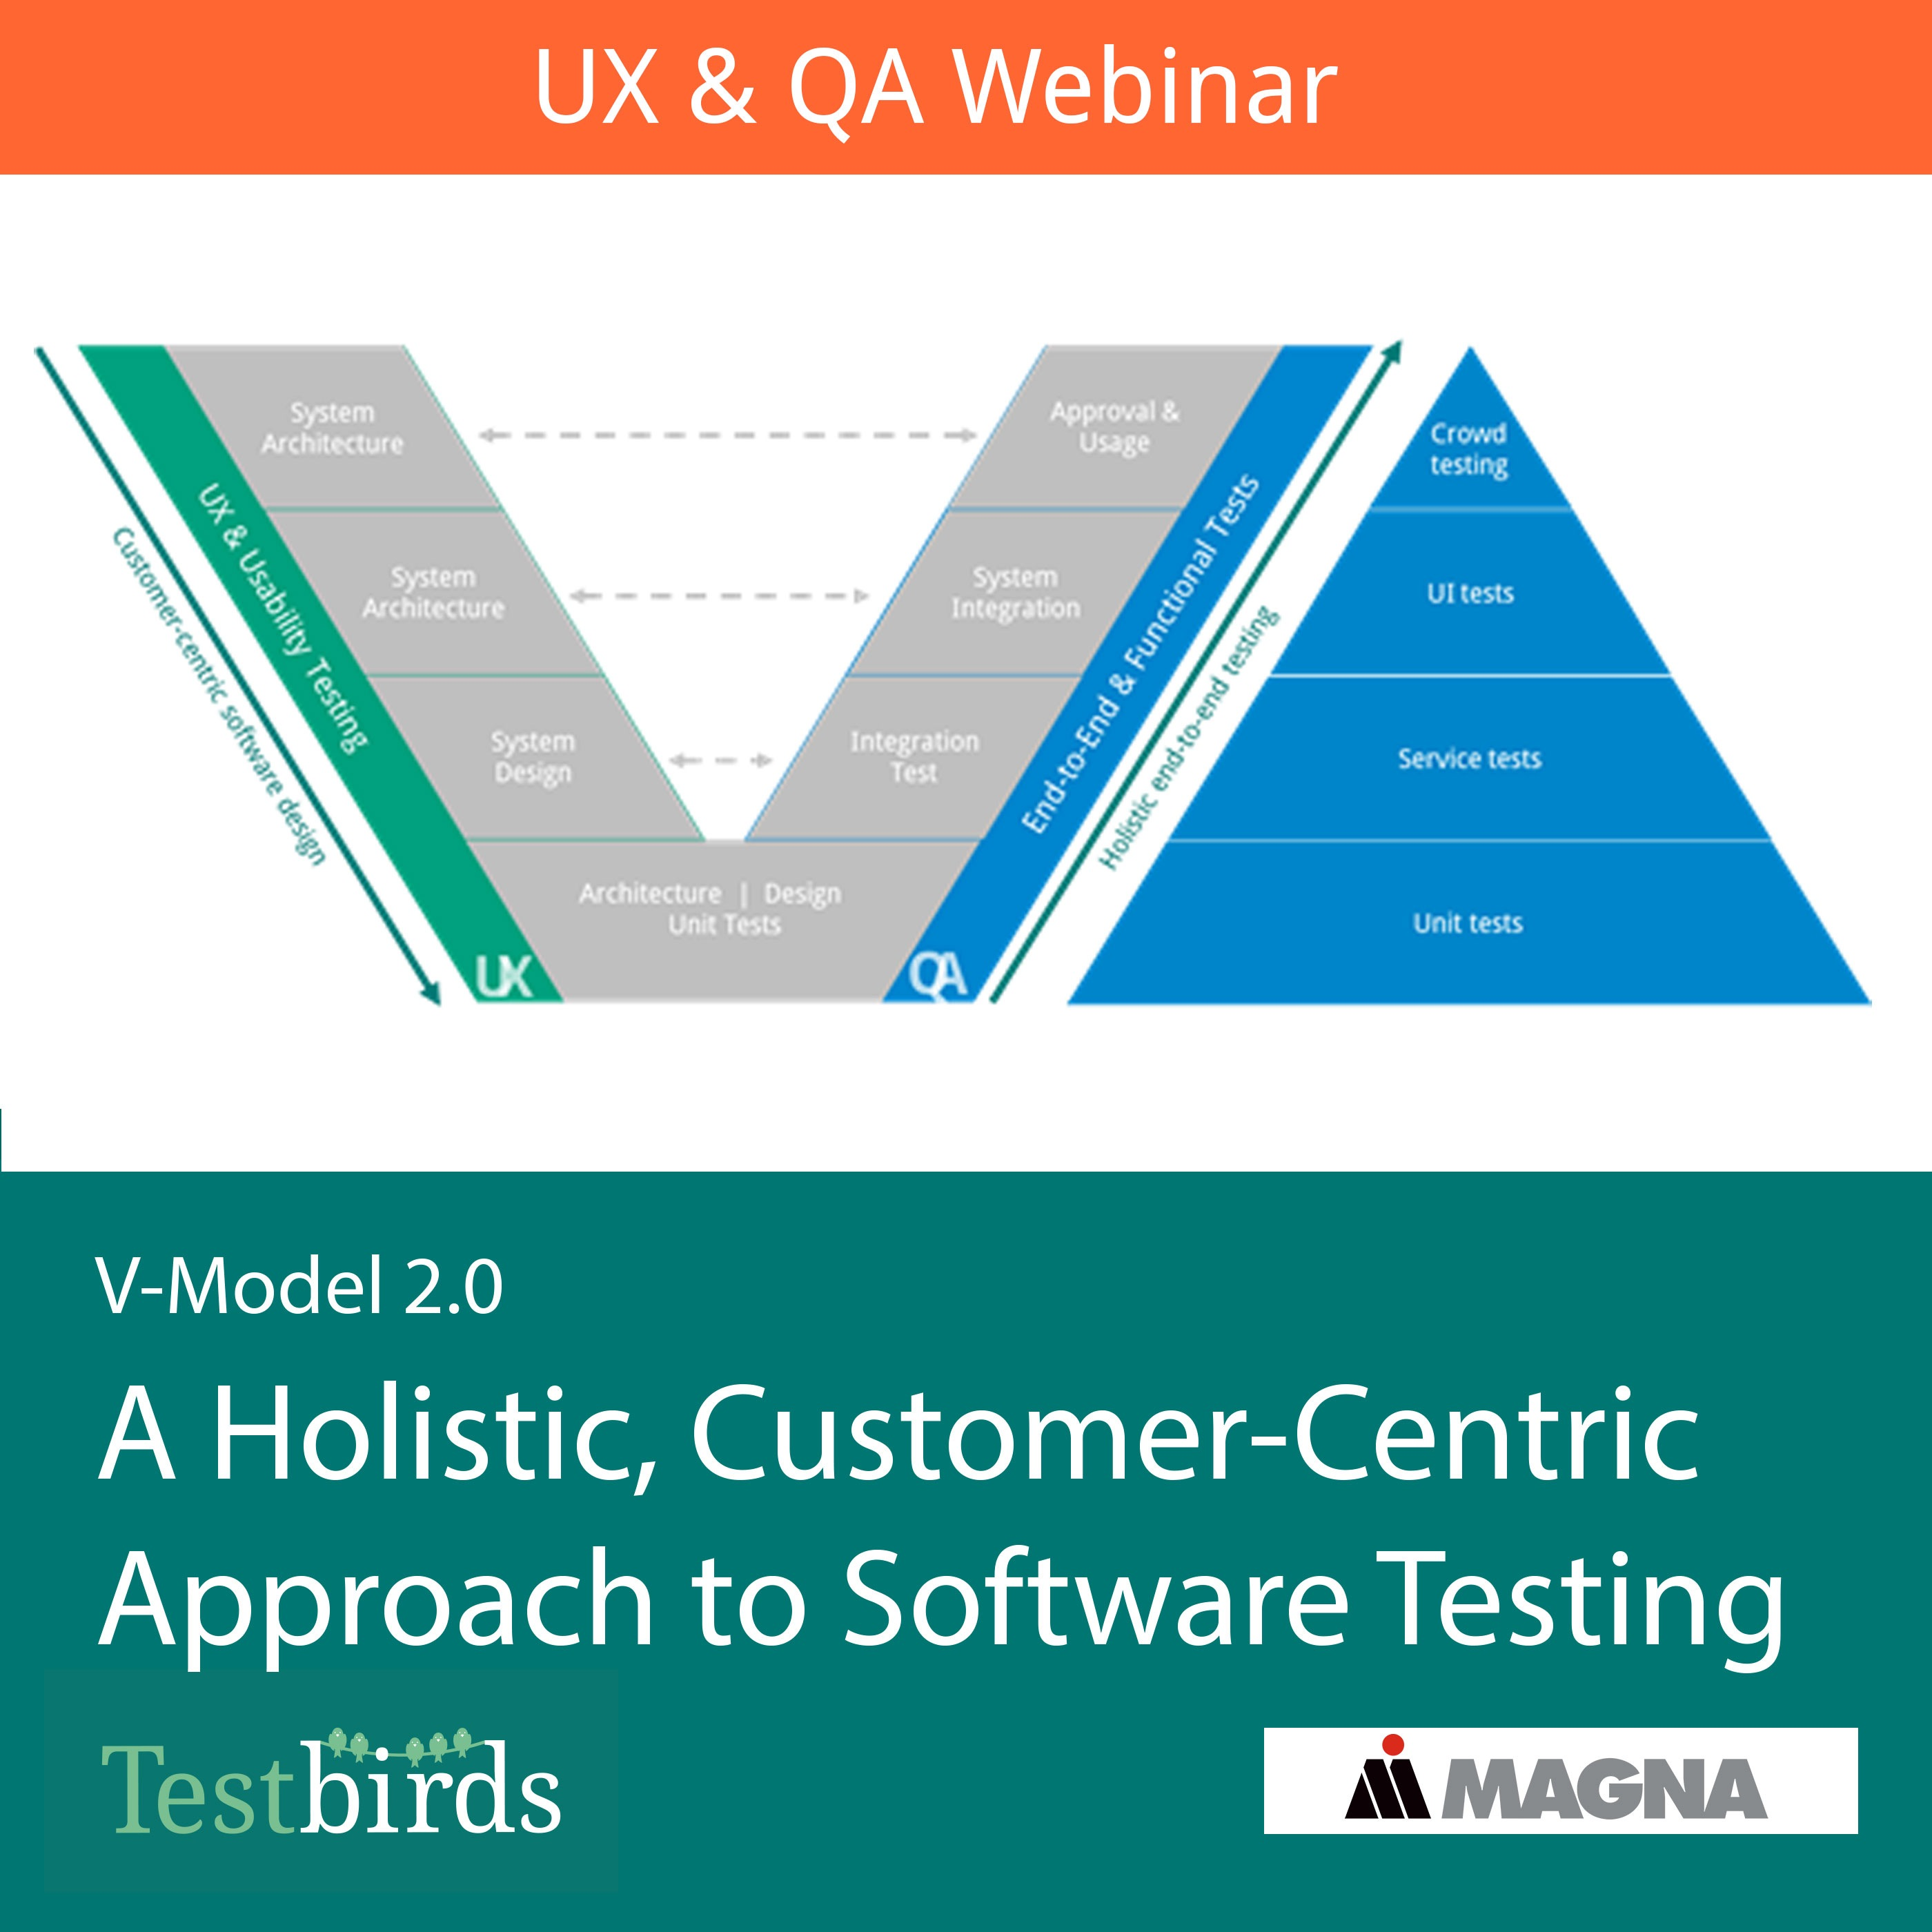 A Holistic, Customer-Centric Approach to Software Testing